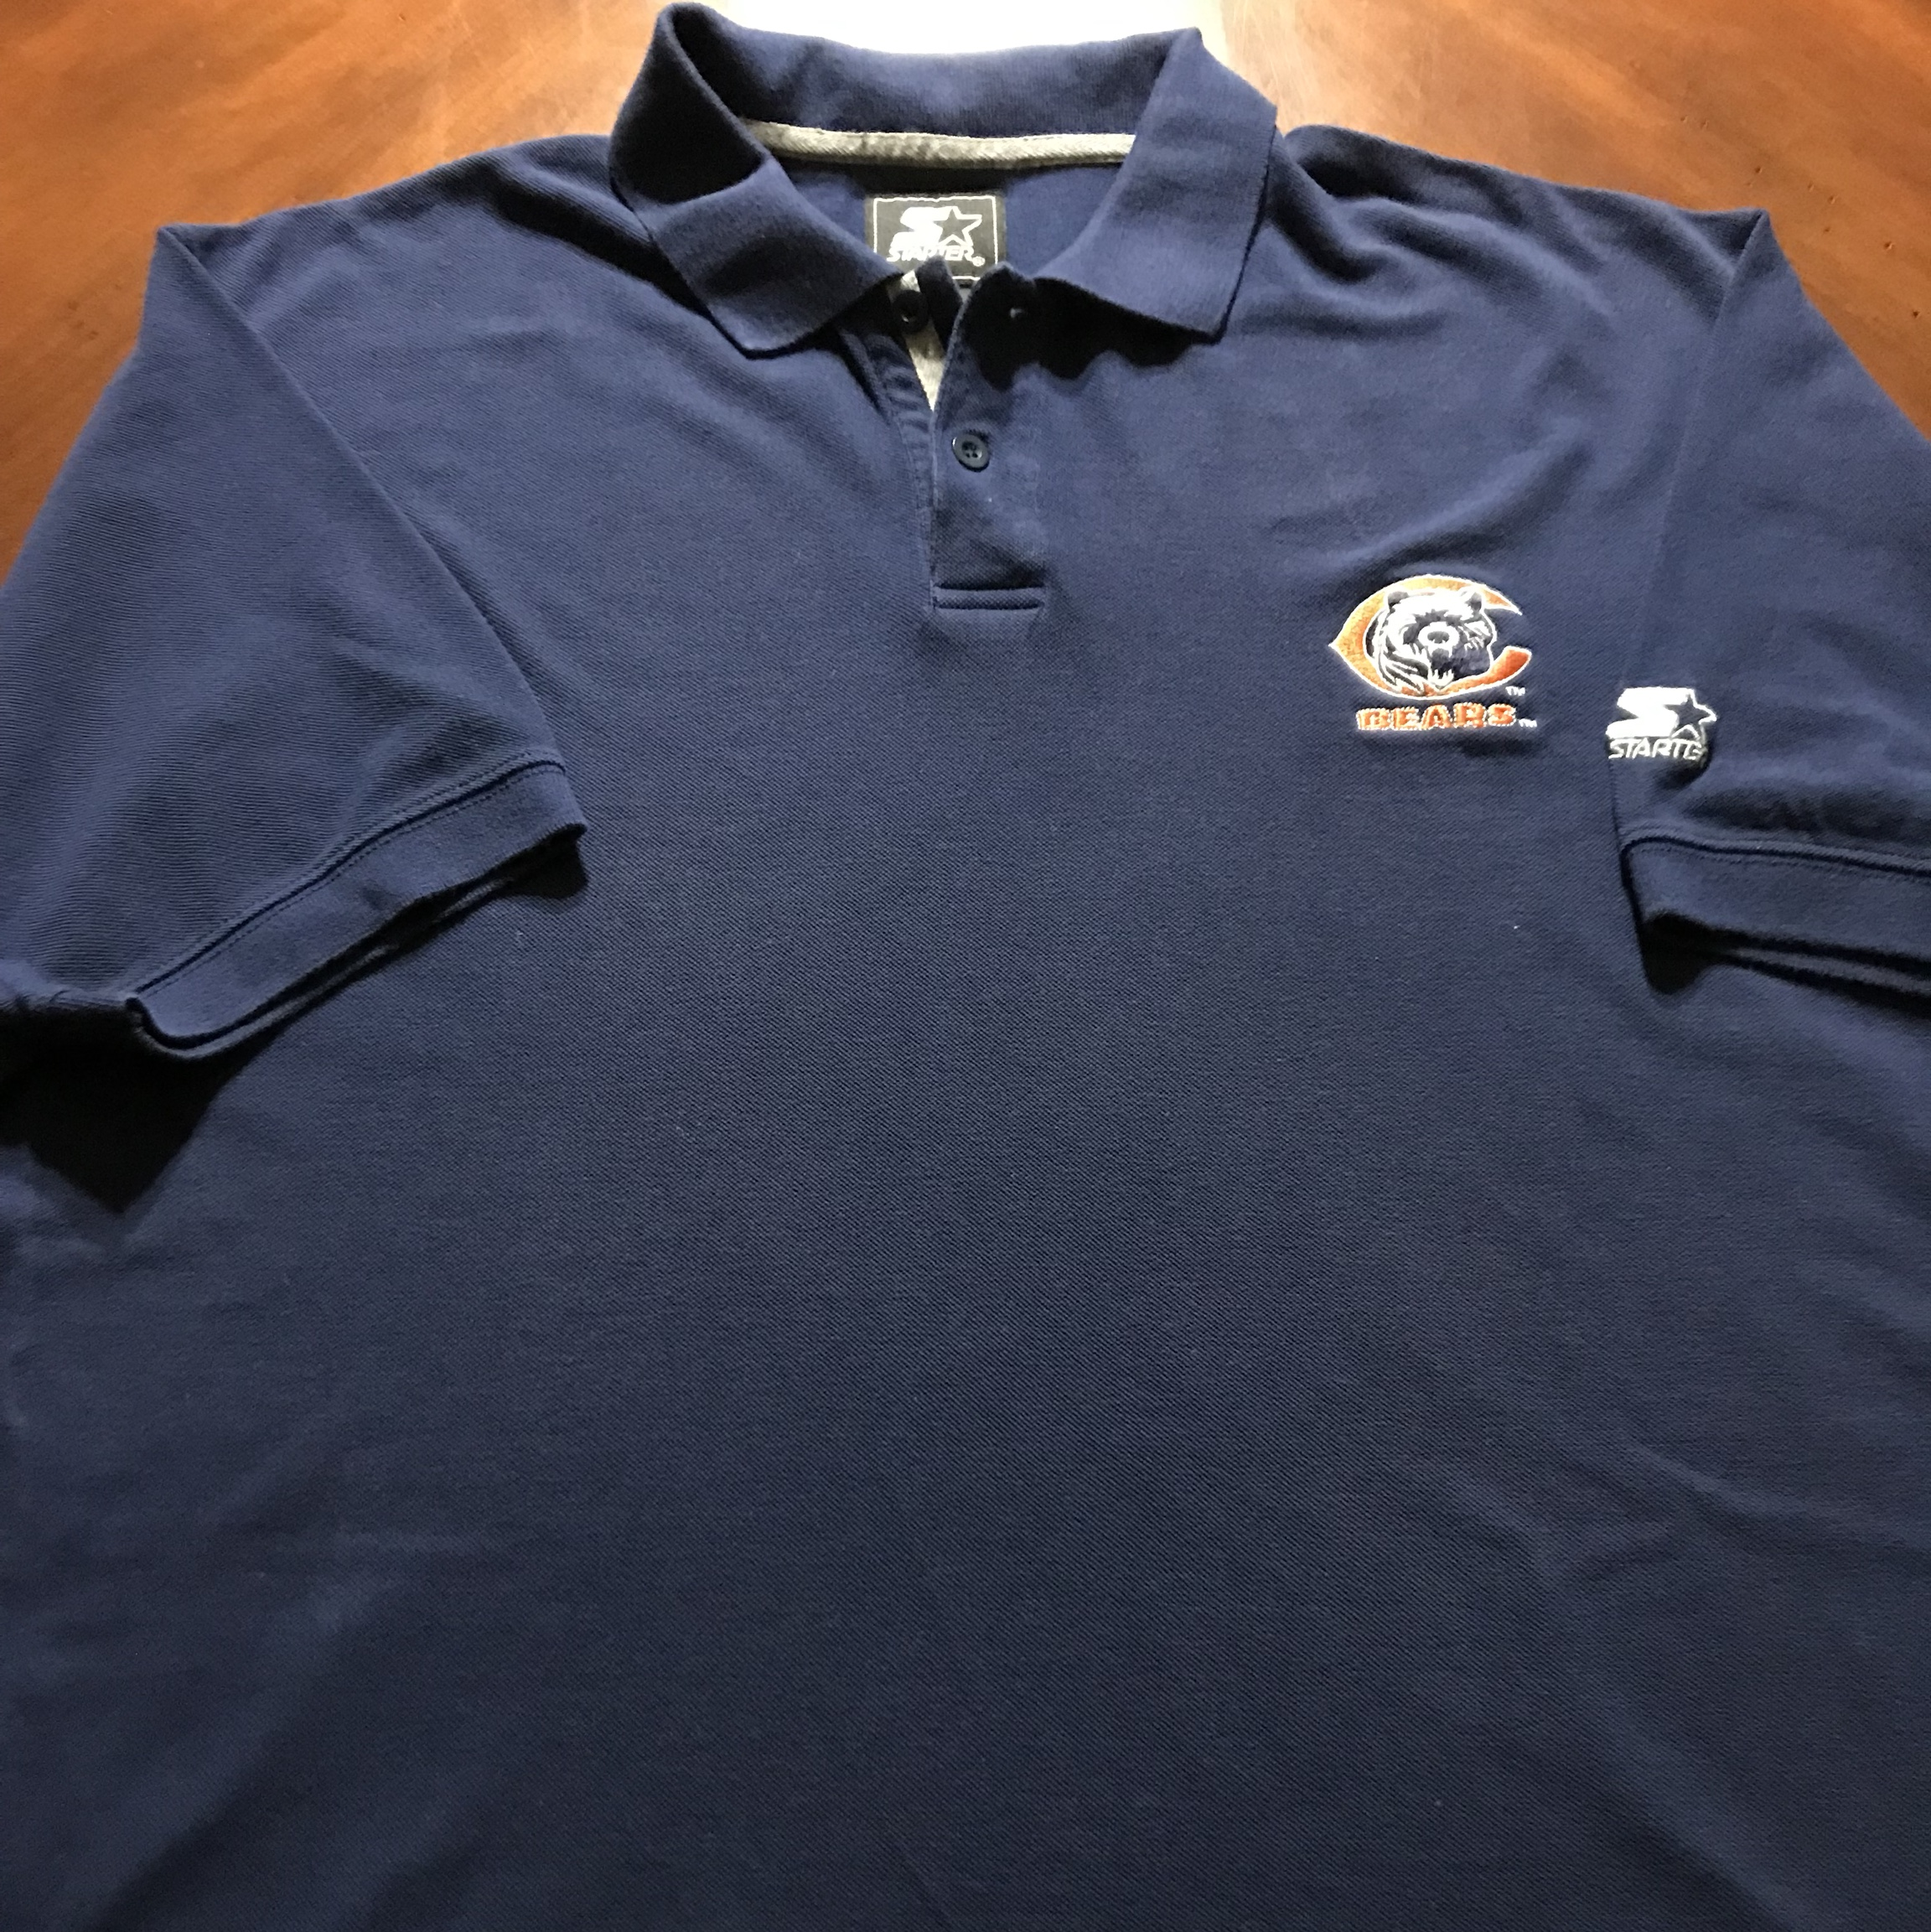 new style e5c10 a74fc Vintage Starter Chicago Bears Polo Shirt Size XL.... - Depop